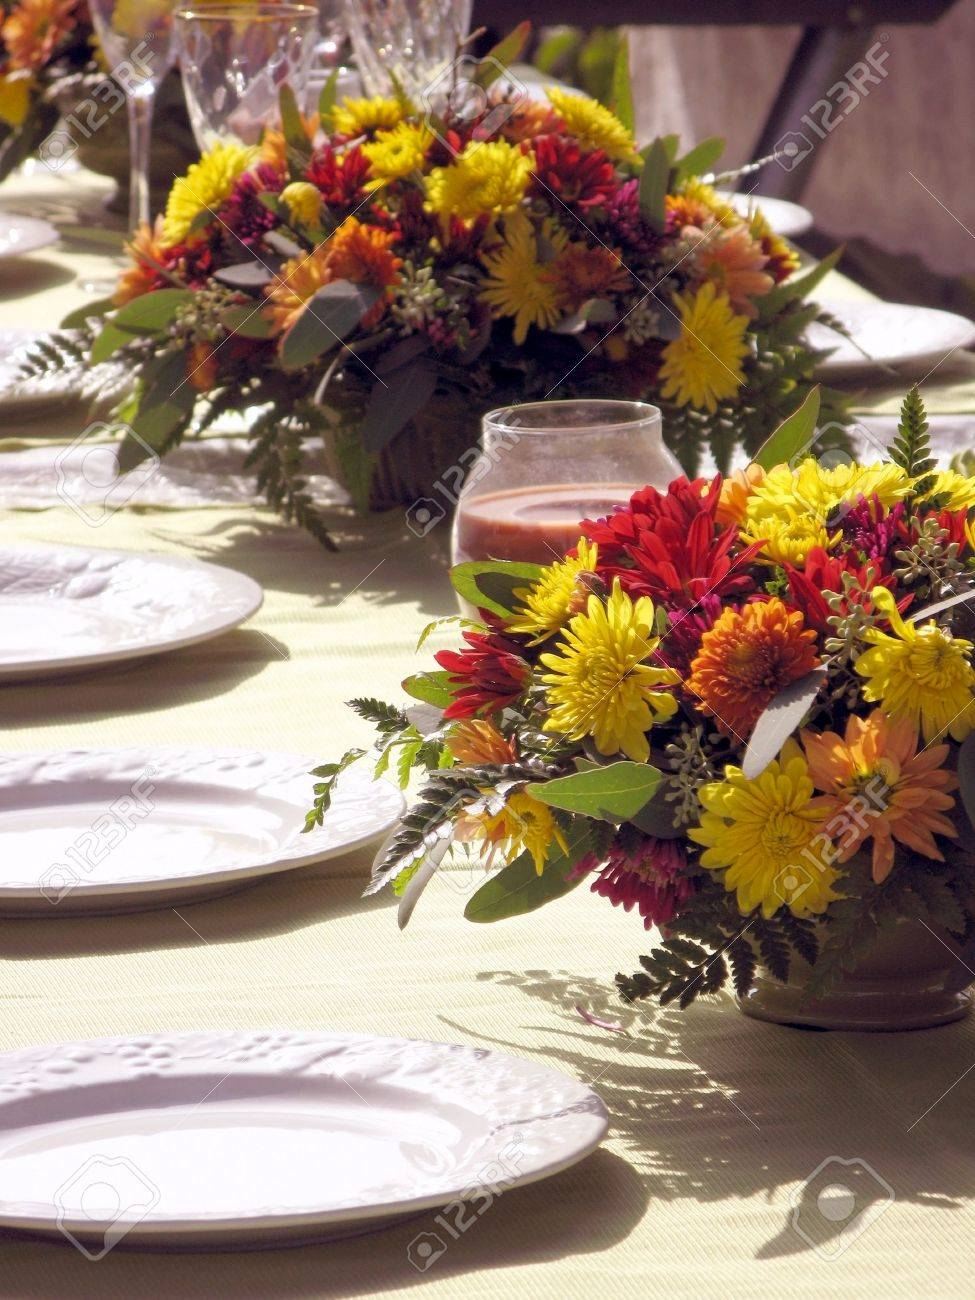 outdoor table setting with flowers in fall colors red yellow golds and orange with white plates & Outdoor Table Setting With Flowers In Fall Colors Red Yellow.. Stock ...